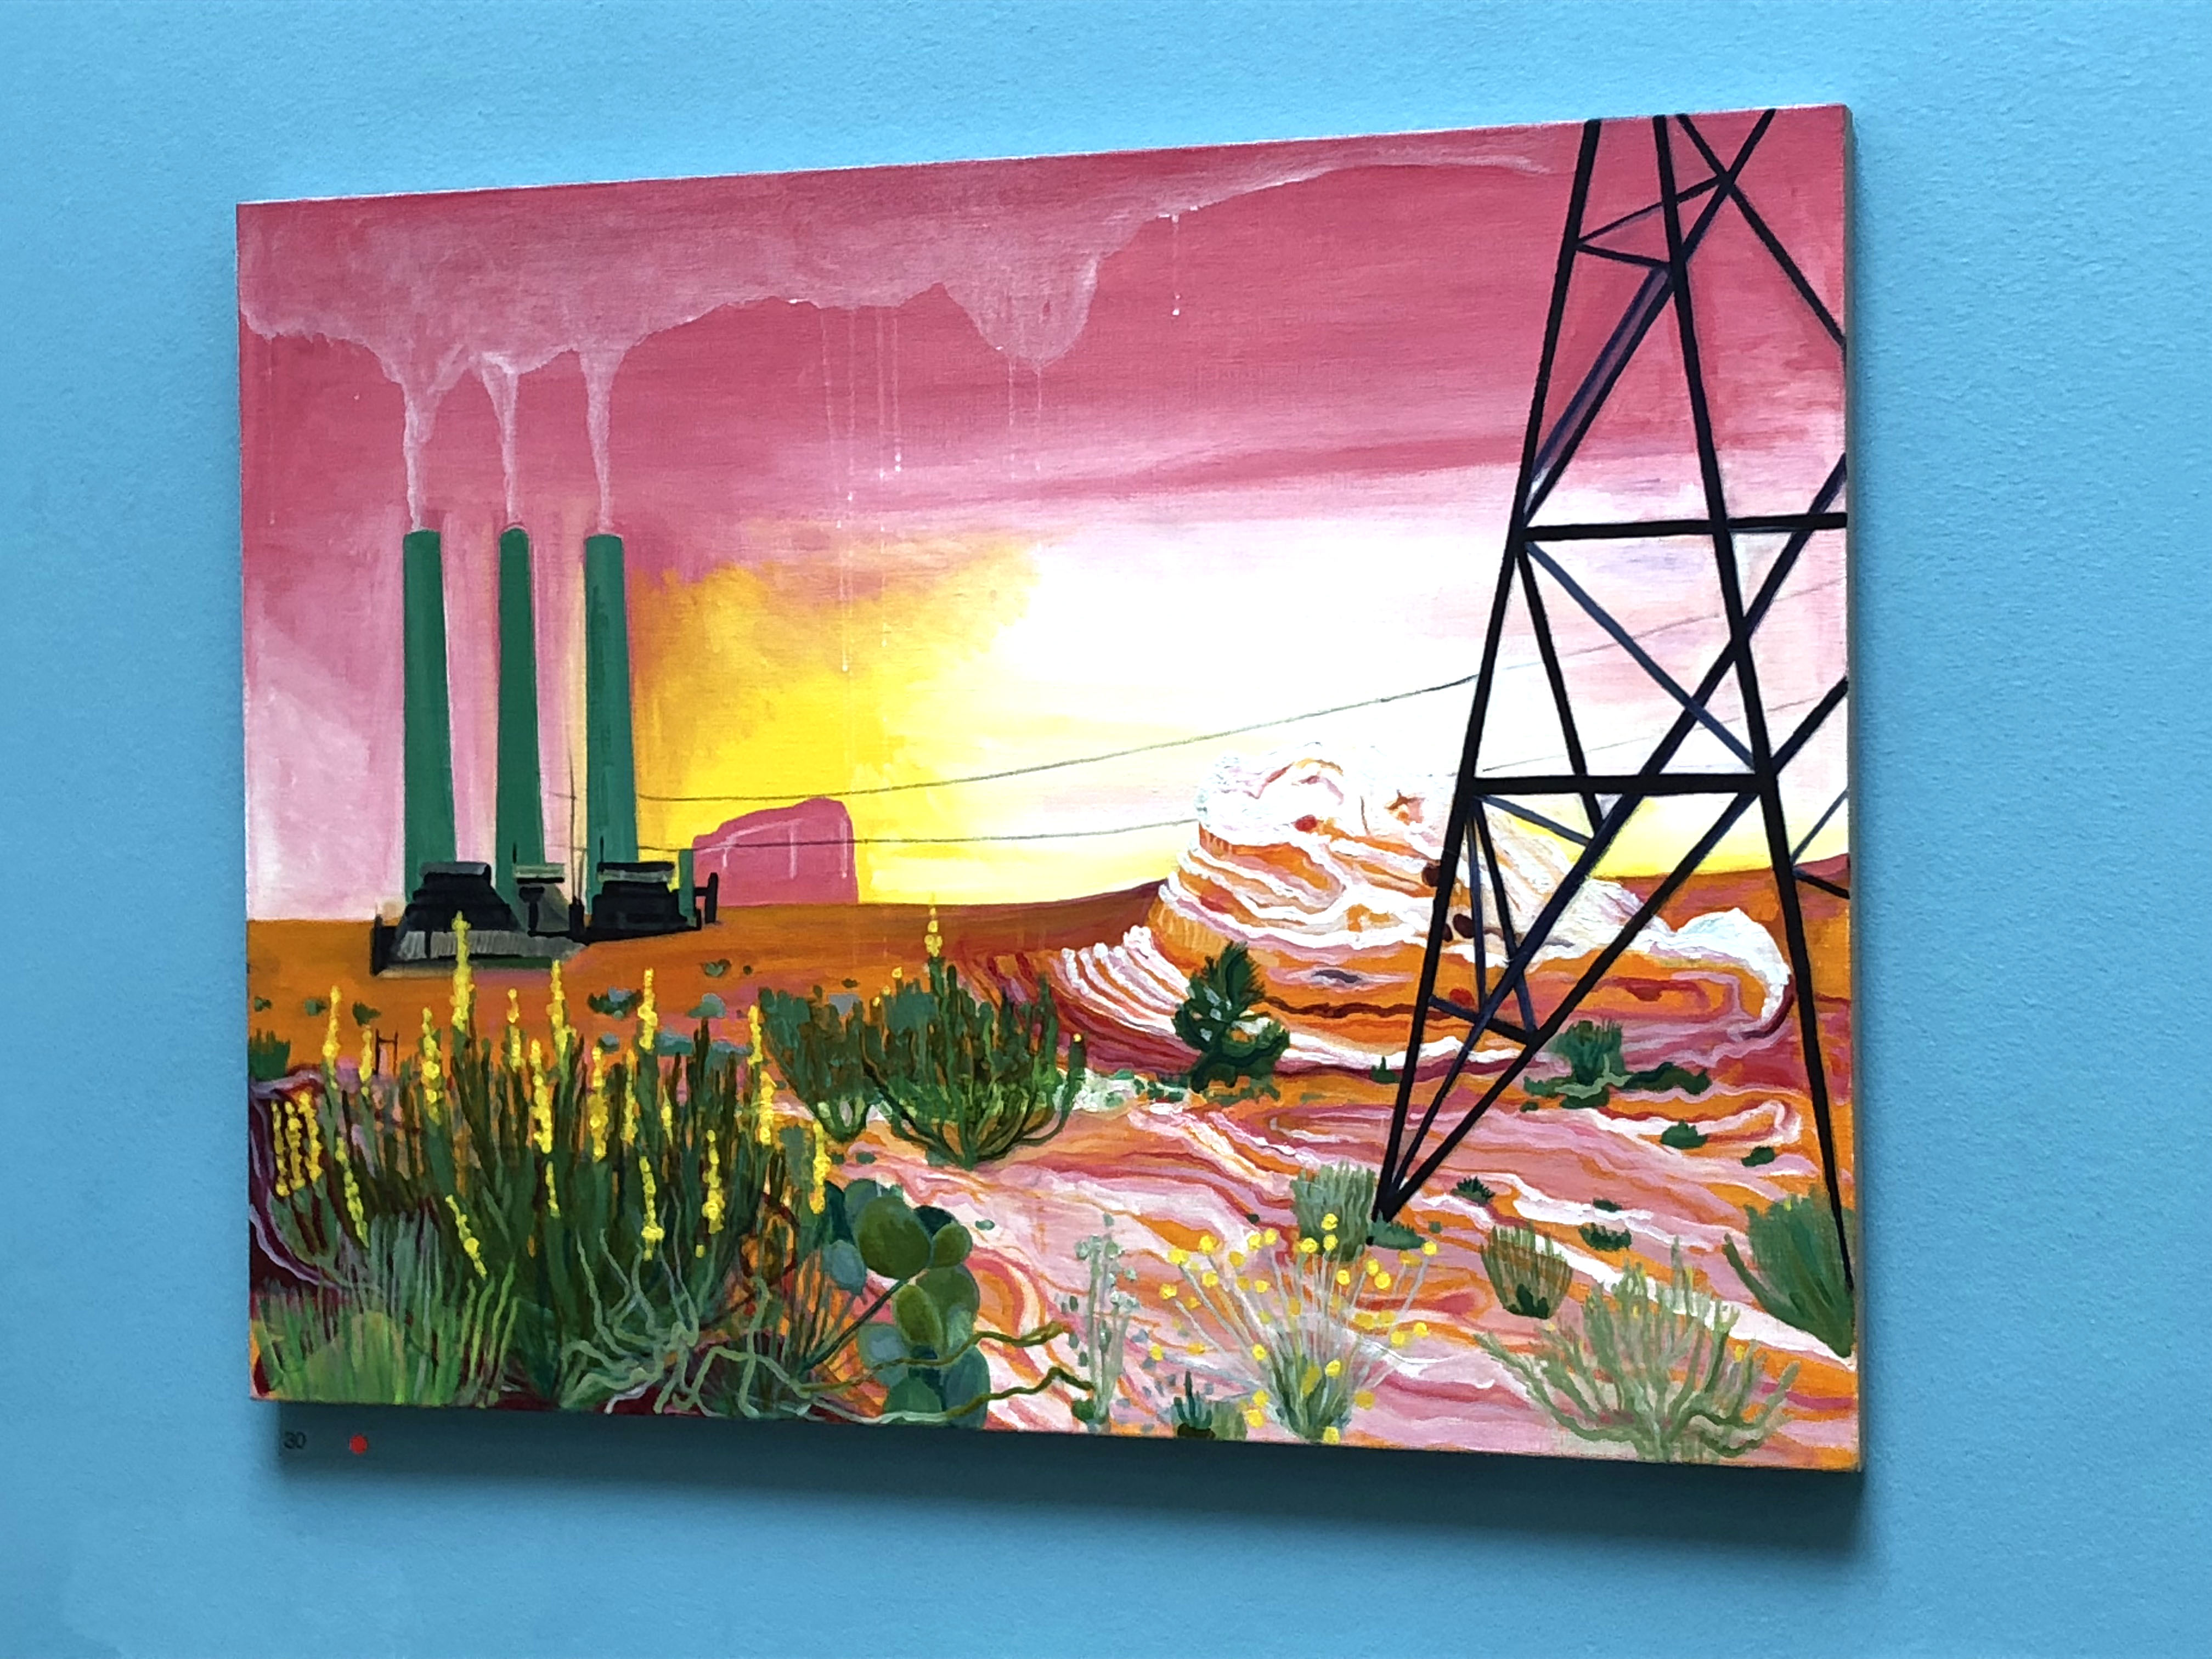 Royal Academy Summer Exhibition 2018. We Could Use A Little Bit Of That Good Old Global Warming by Lisa Rigg